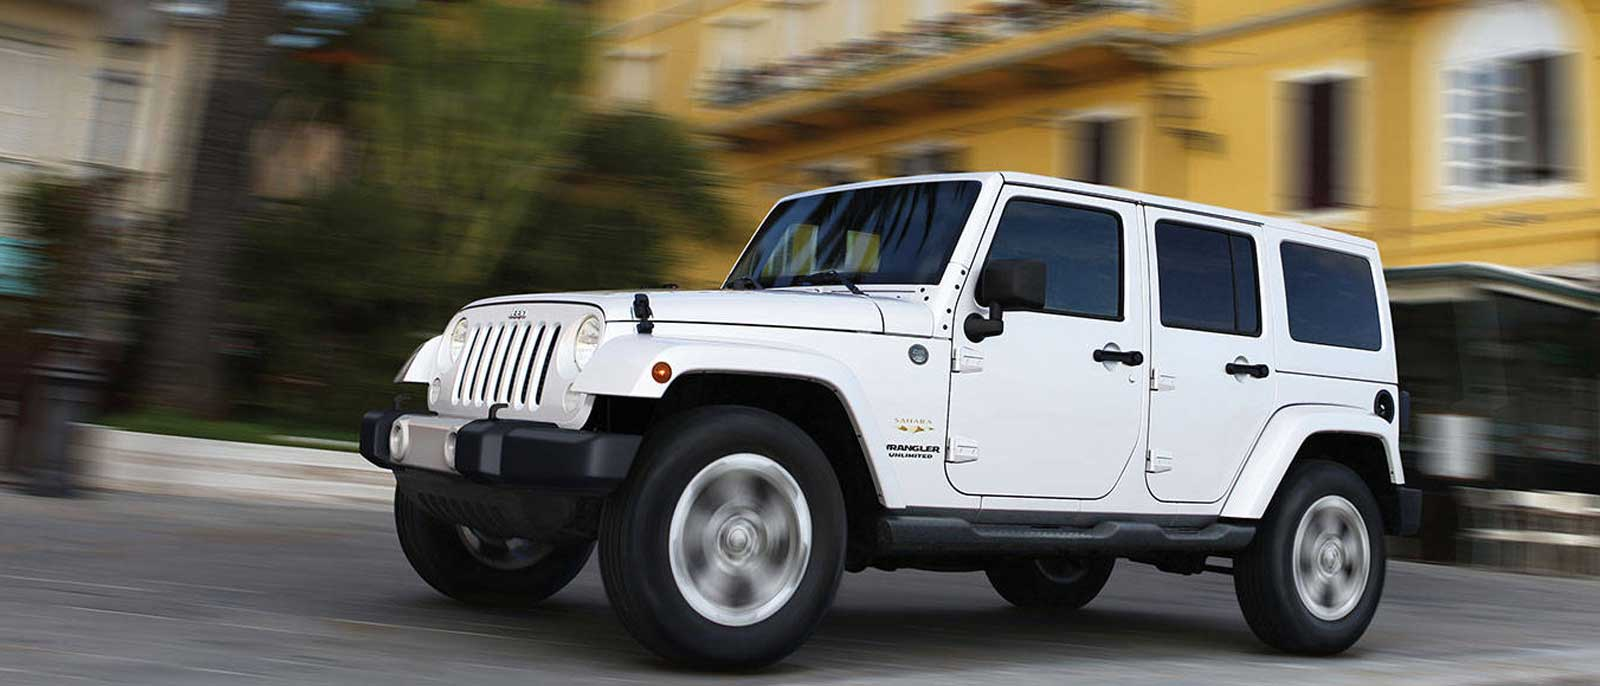 2015 jeep wrangler unlimited the faricy boys for Jeep dealer colorado springs motor city